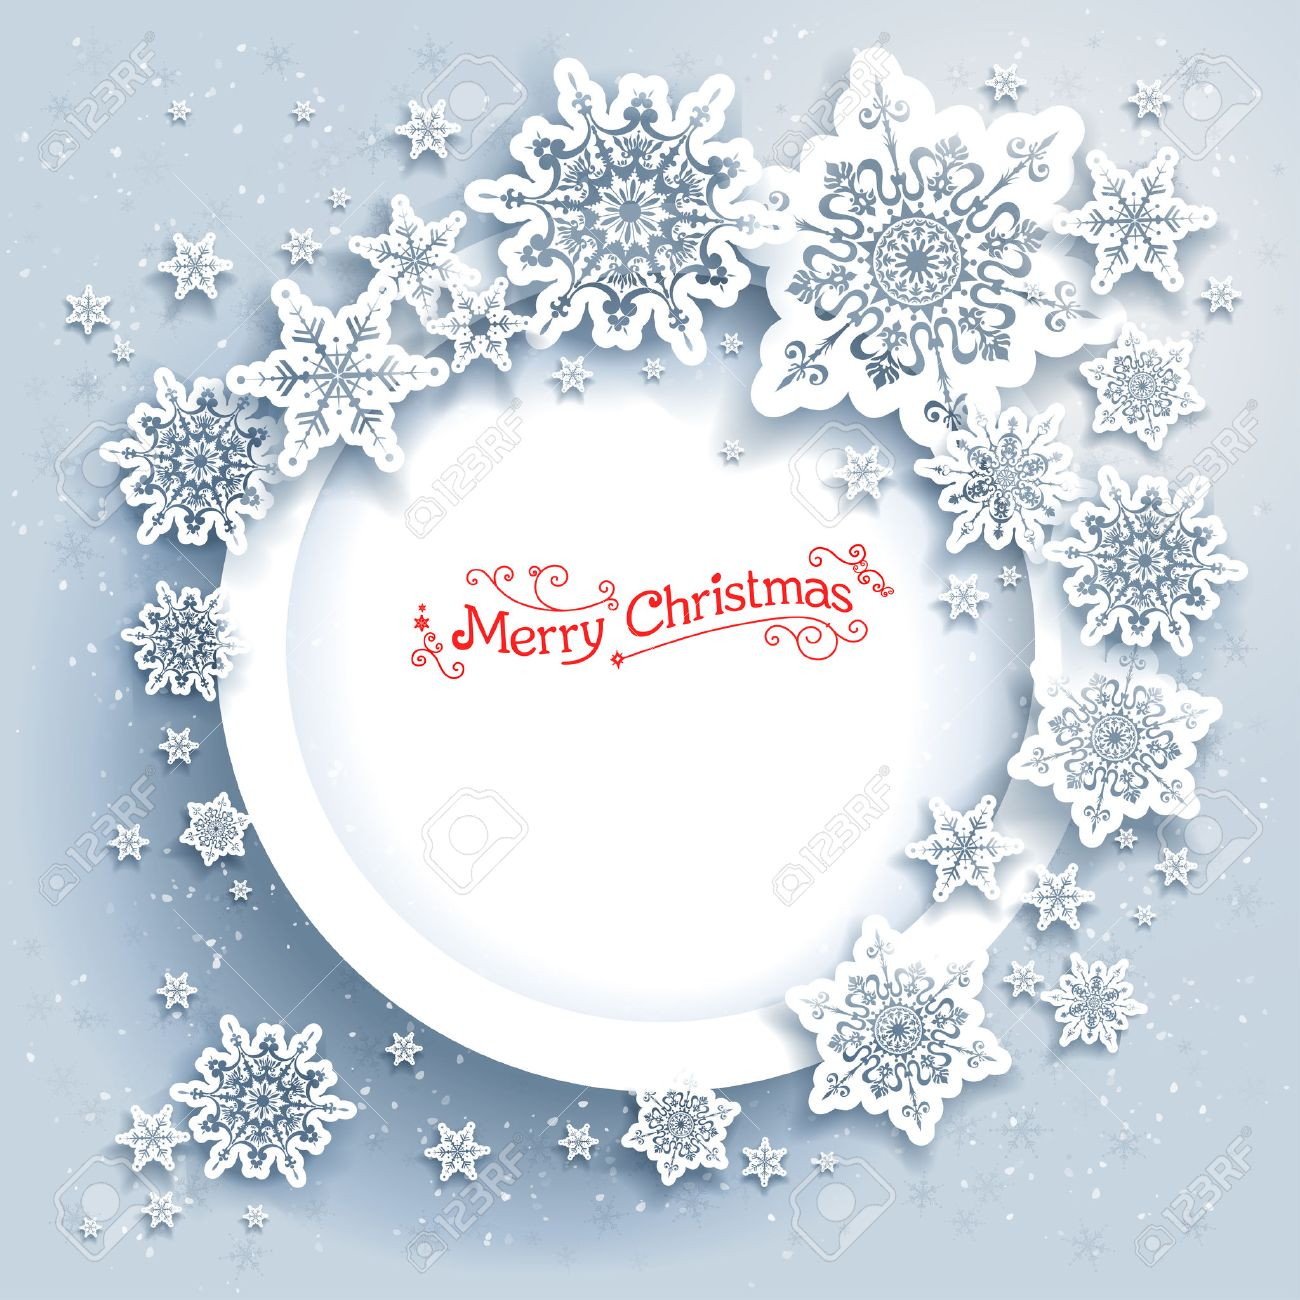 Snowflakes Holiday Frame Winter Holiday Card For Web Banner